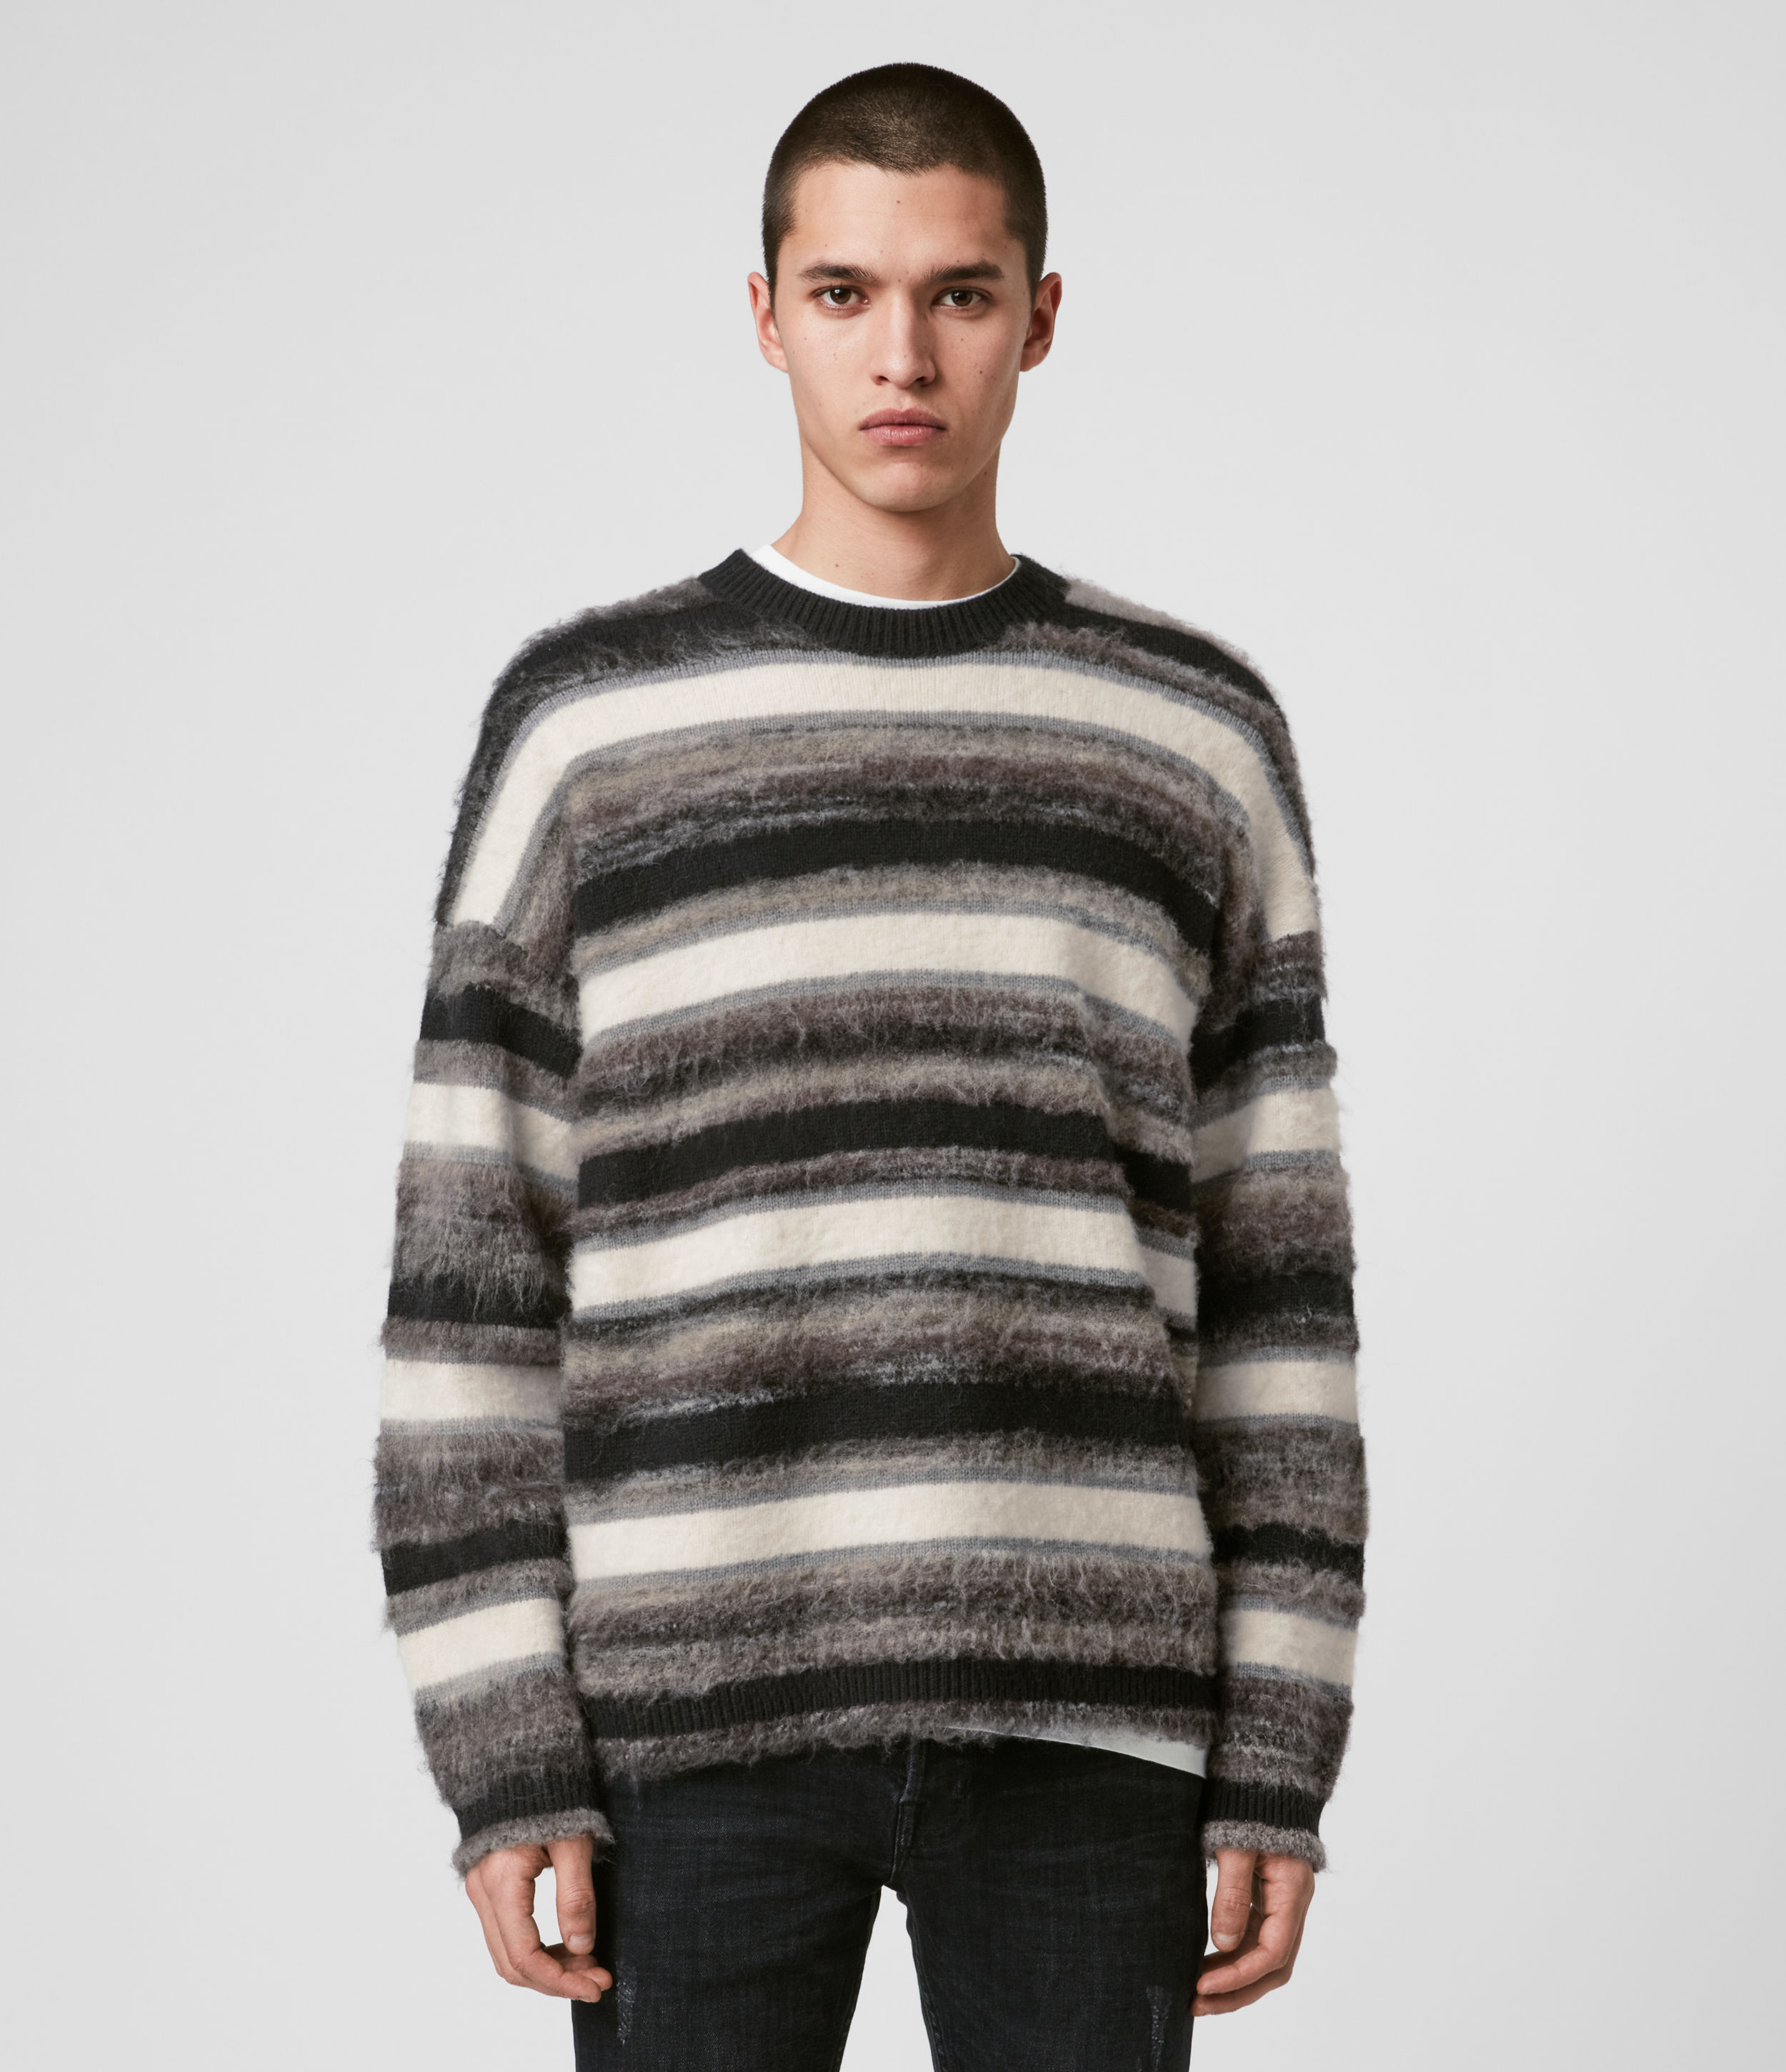 AllSaints Mens Lerryn Crew Jumper, Black and Grey, Size: S